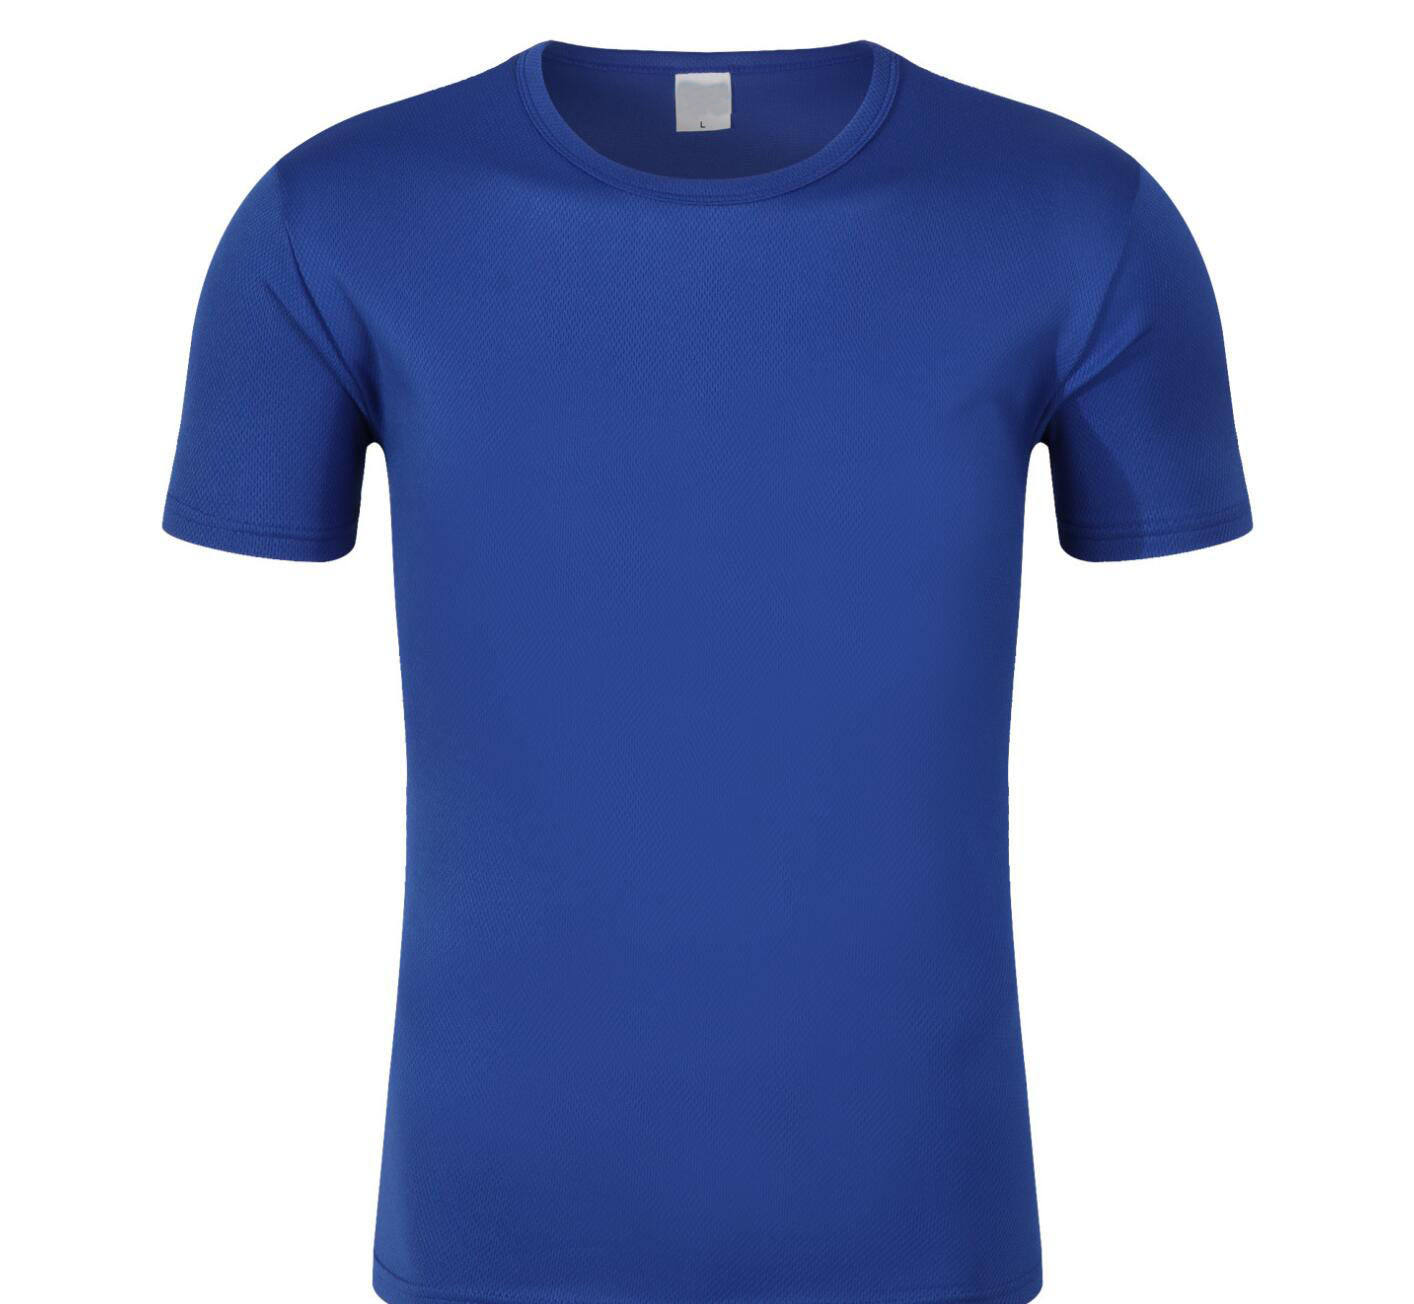 Customized Outdoor Quick Dry Clothes Men's Short-Sleeved Fast Dry T-shirt